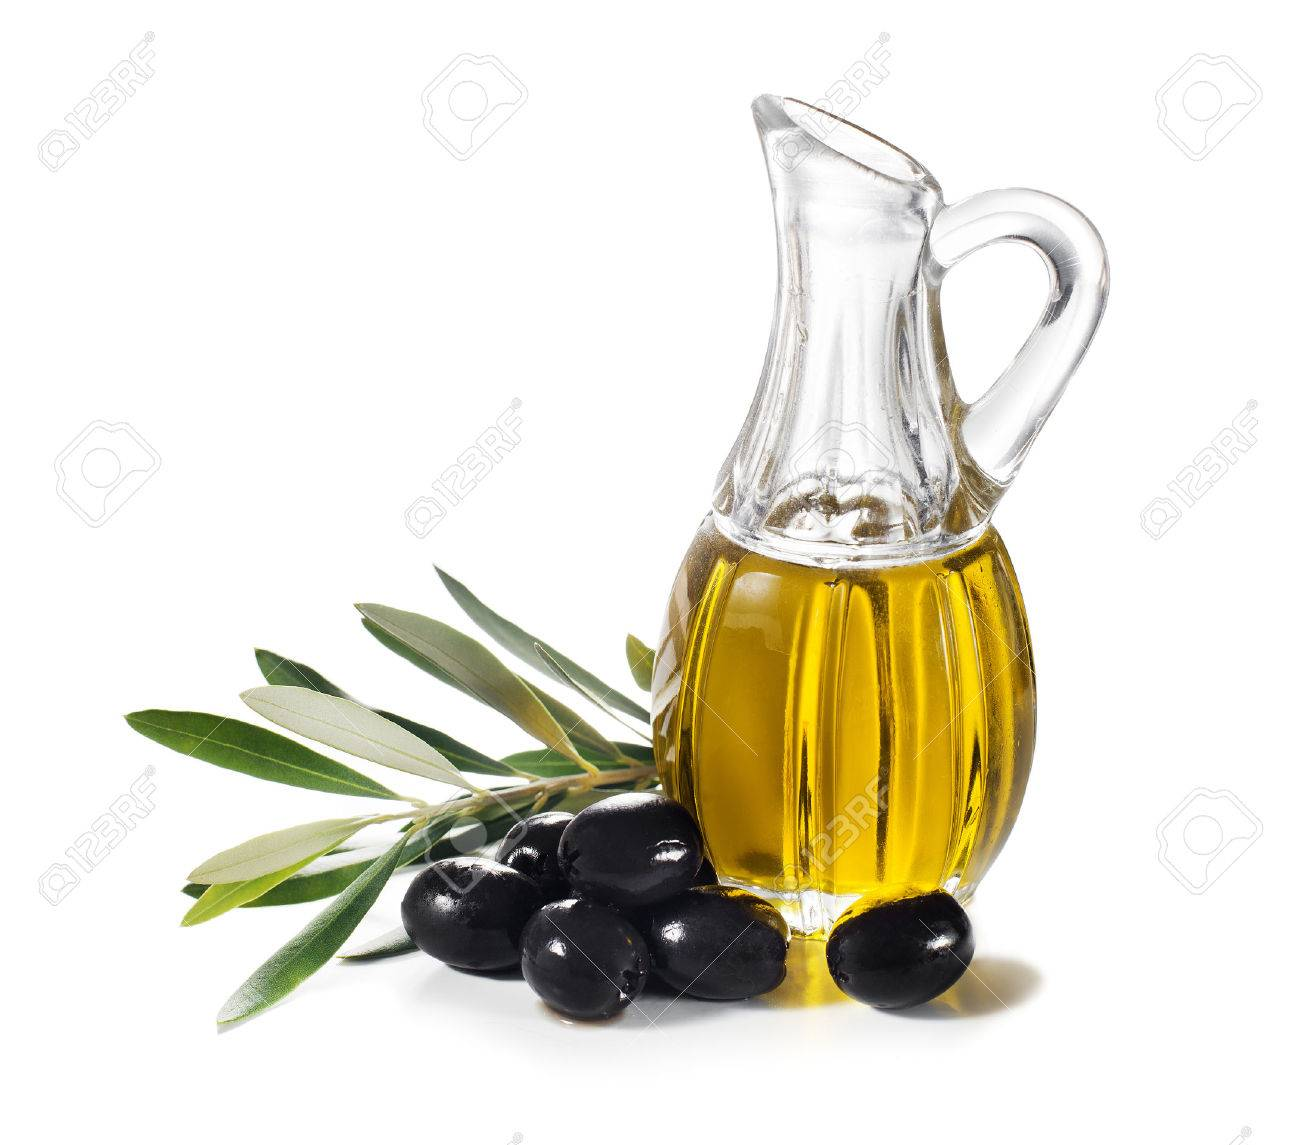 Olive oil and olive branch isolated on white. - 44188177